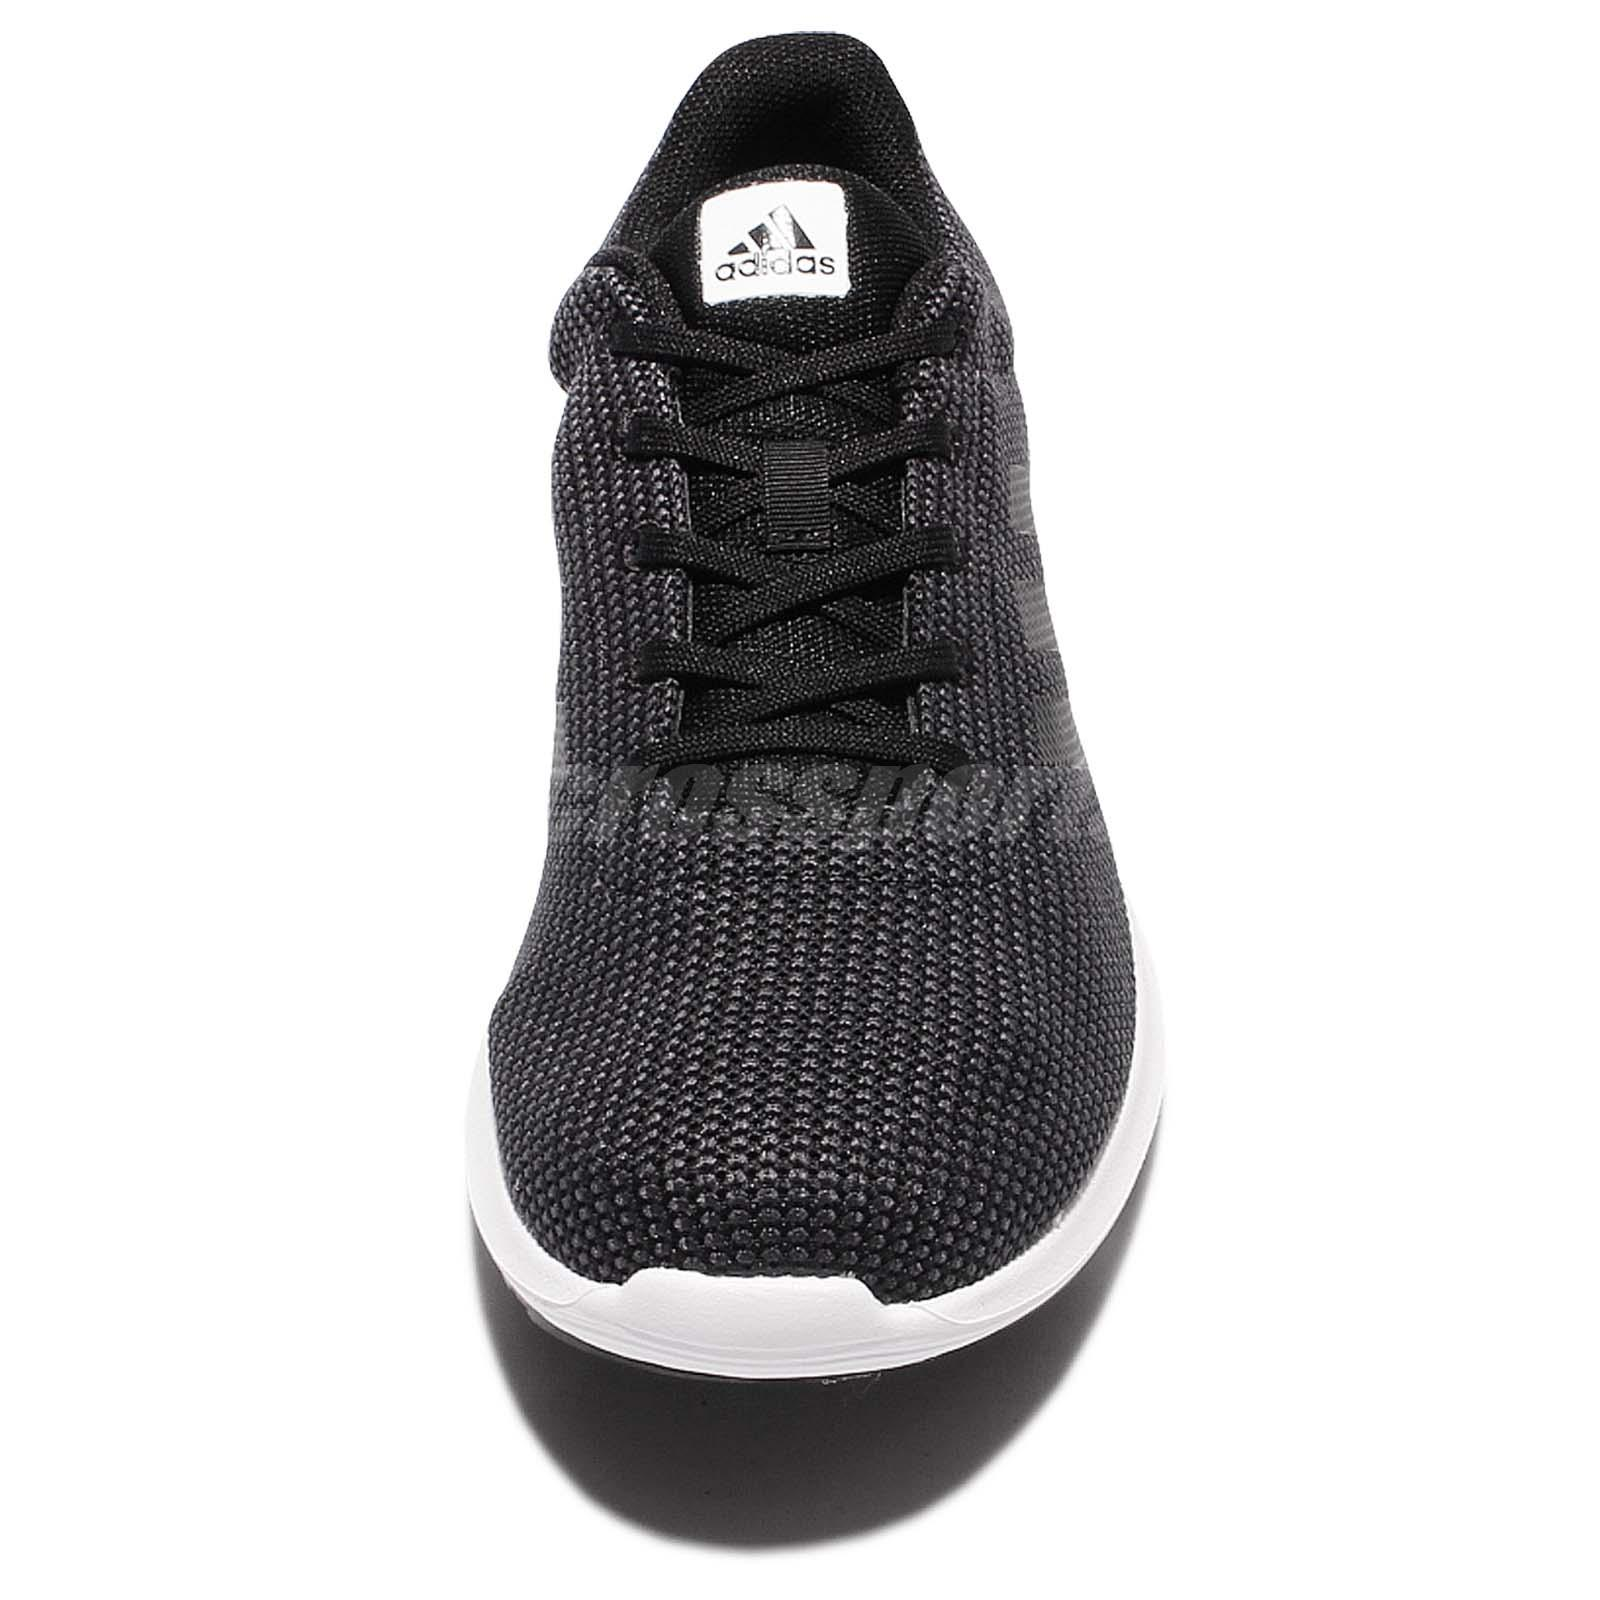 adidas shoes information